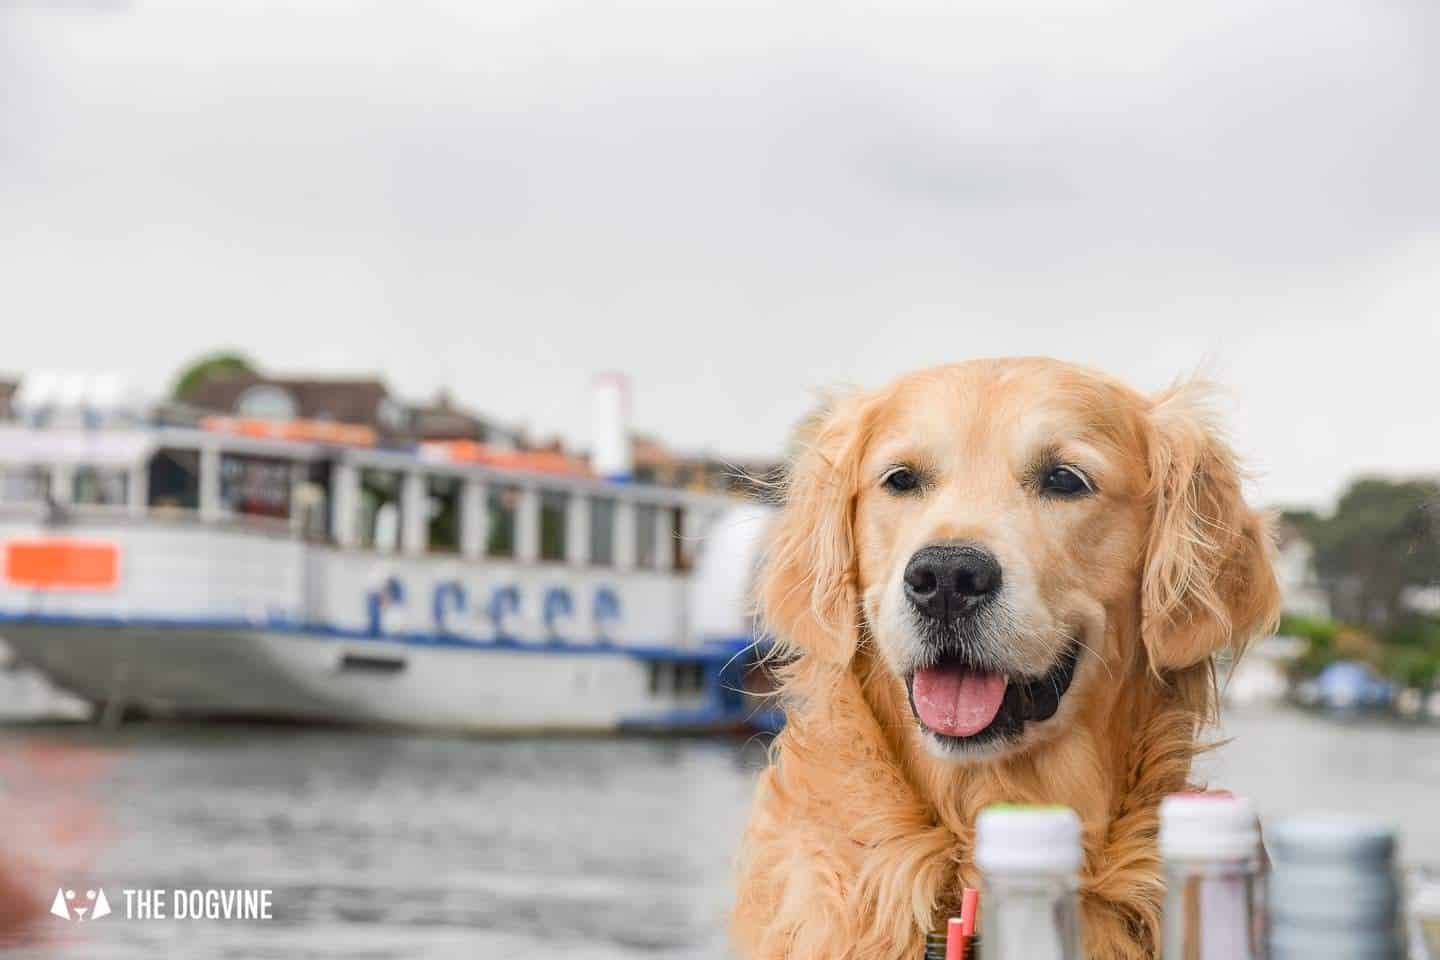 Dog-friendly Go Boat Kingston Upon Thames 3